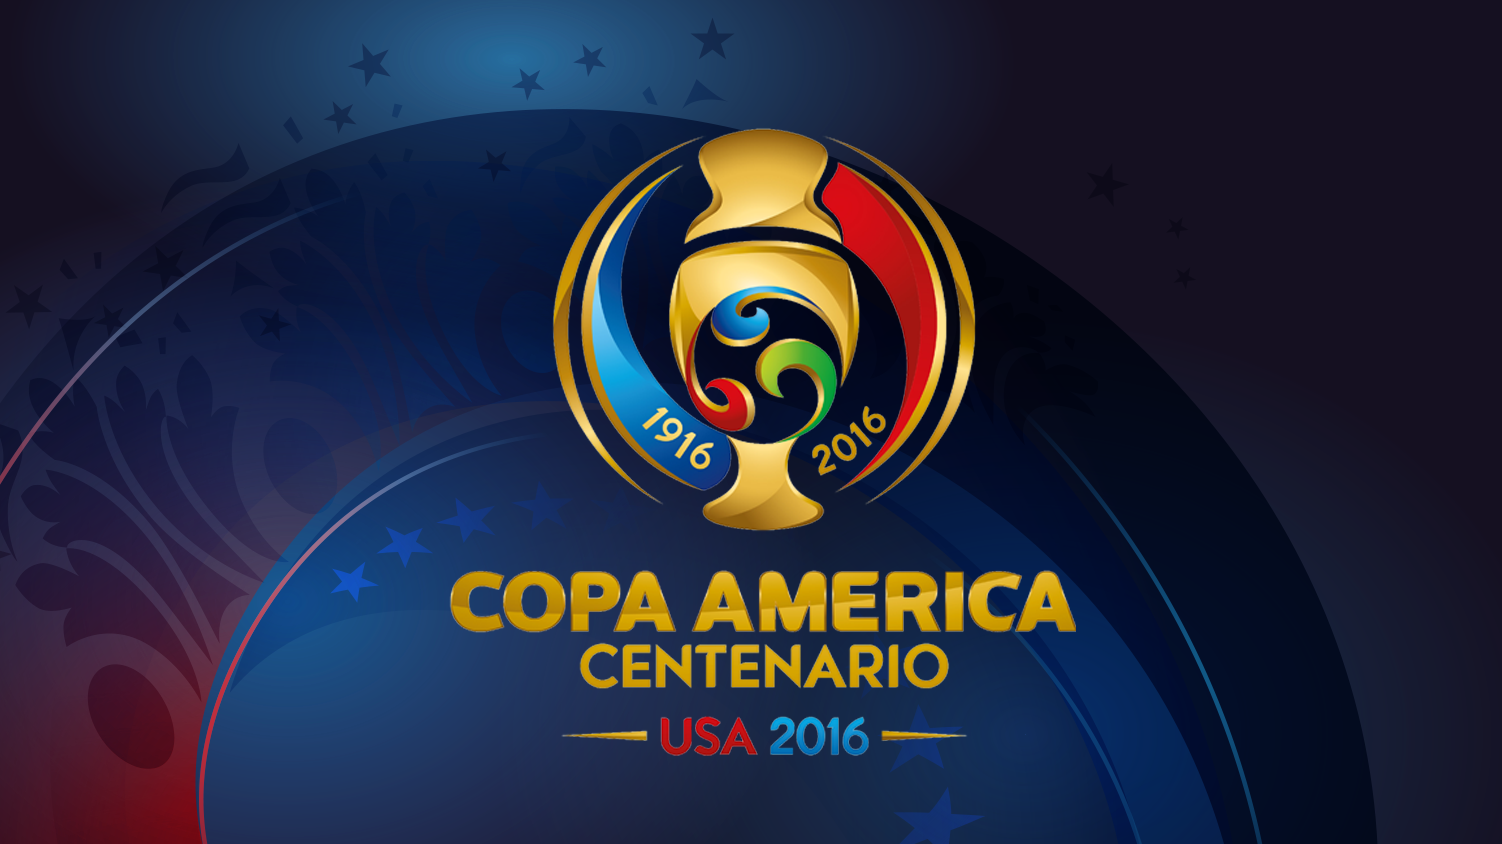 Copa America Centenario groups, schedule and results